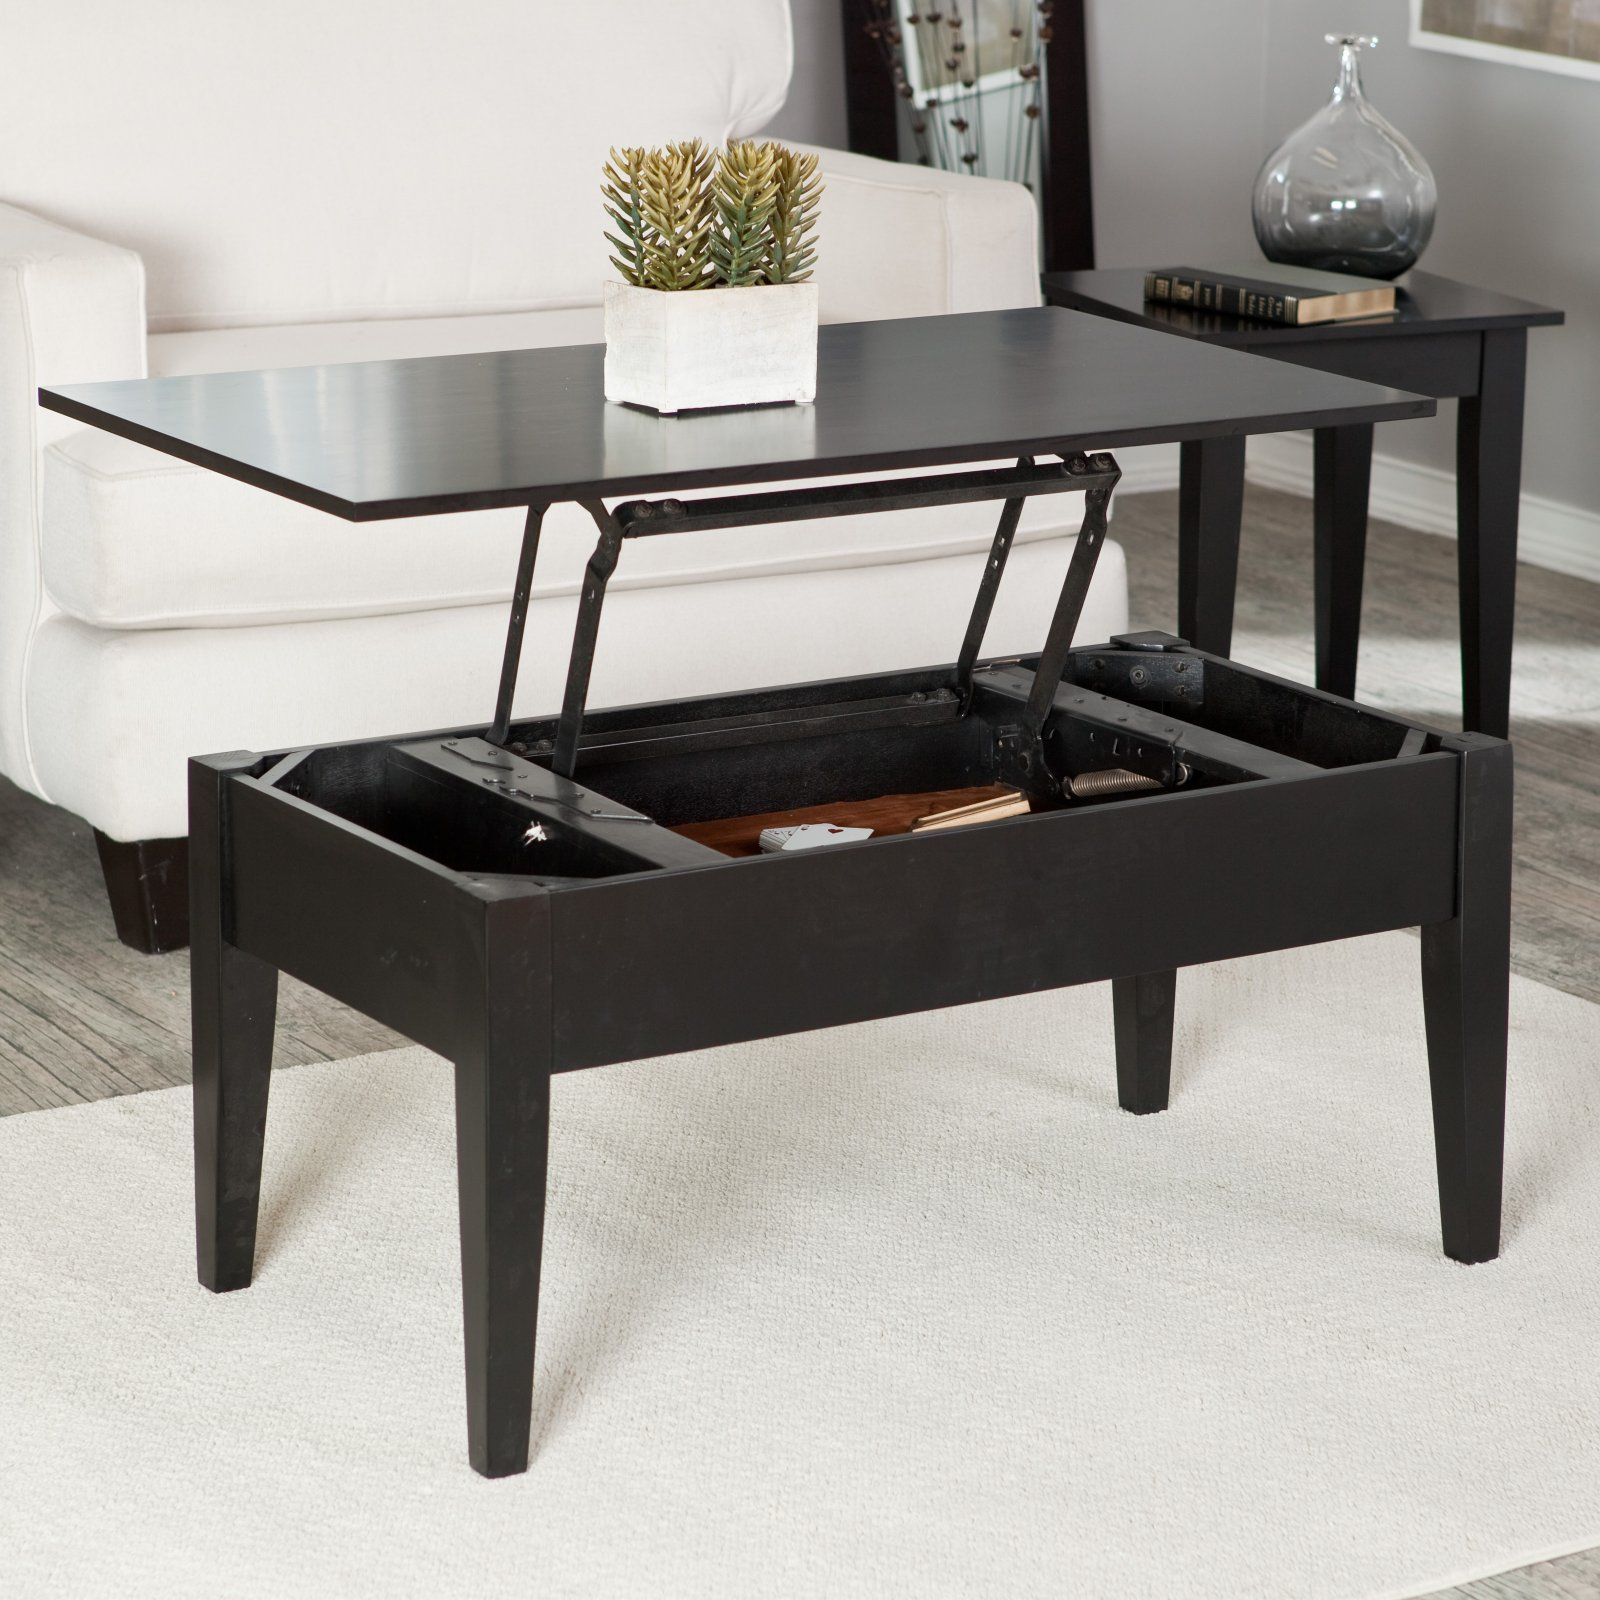 - Coffee Table Doubles As A Desk Or Dining Table! Turner Lift Top